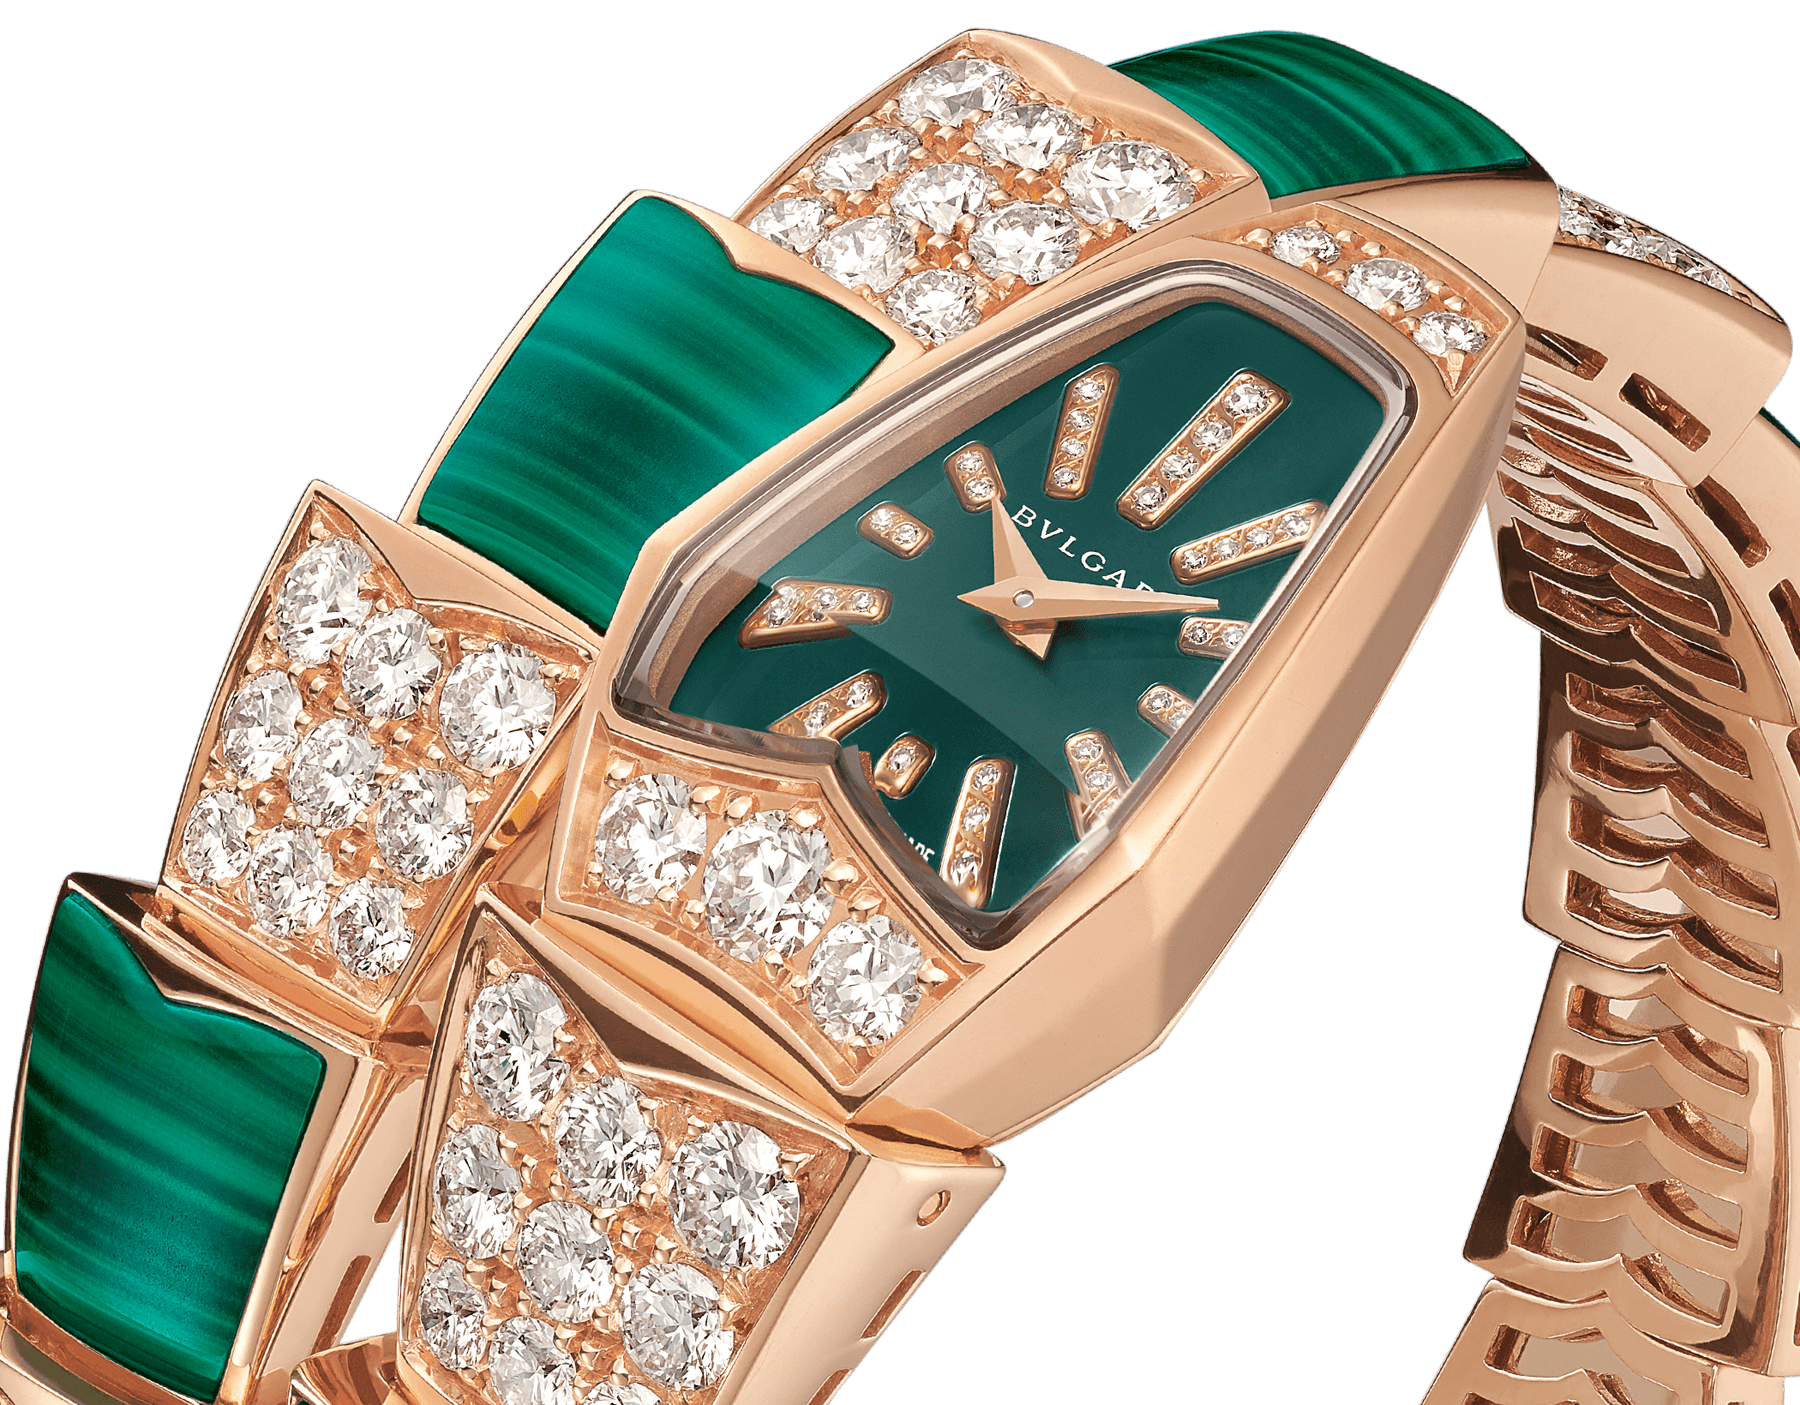 Serpenti Jewellery Watch with 18 kt rose gold case set with brilliant cut diamonds, green lacquered dial, diamond indexes and 18 kt rose gold single spiral bracelet set with brilliant cut diamonds and malachite elements. 102678 image 2